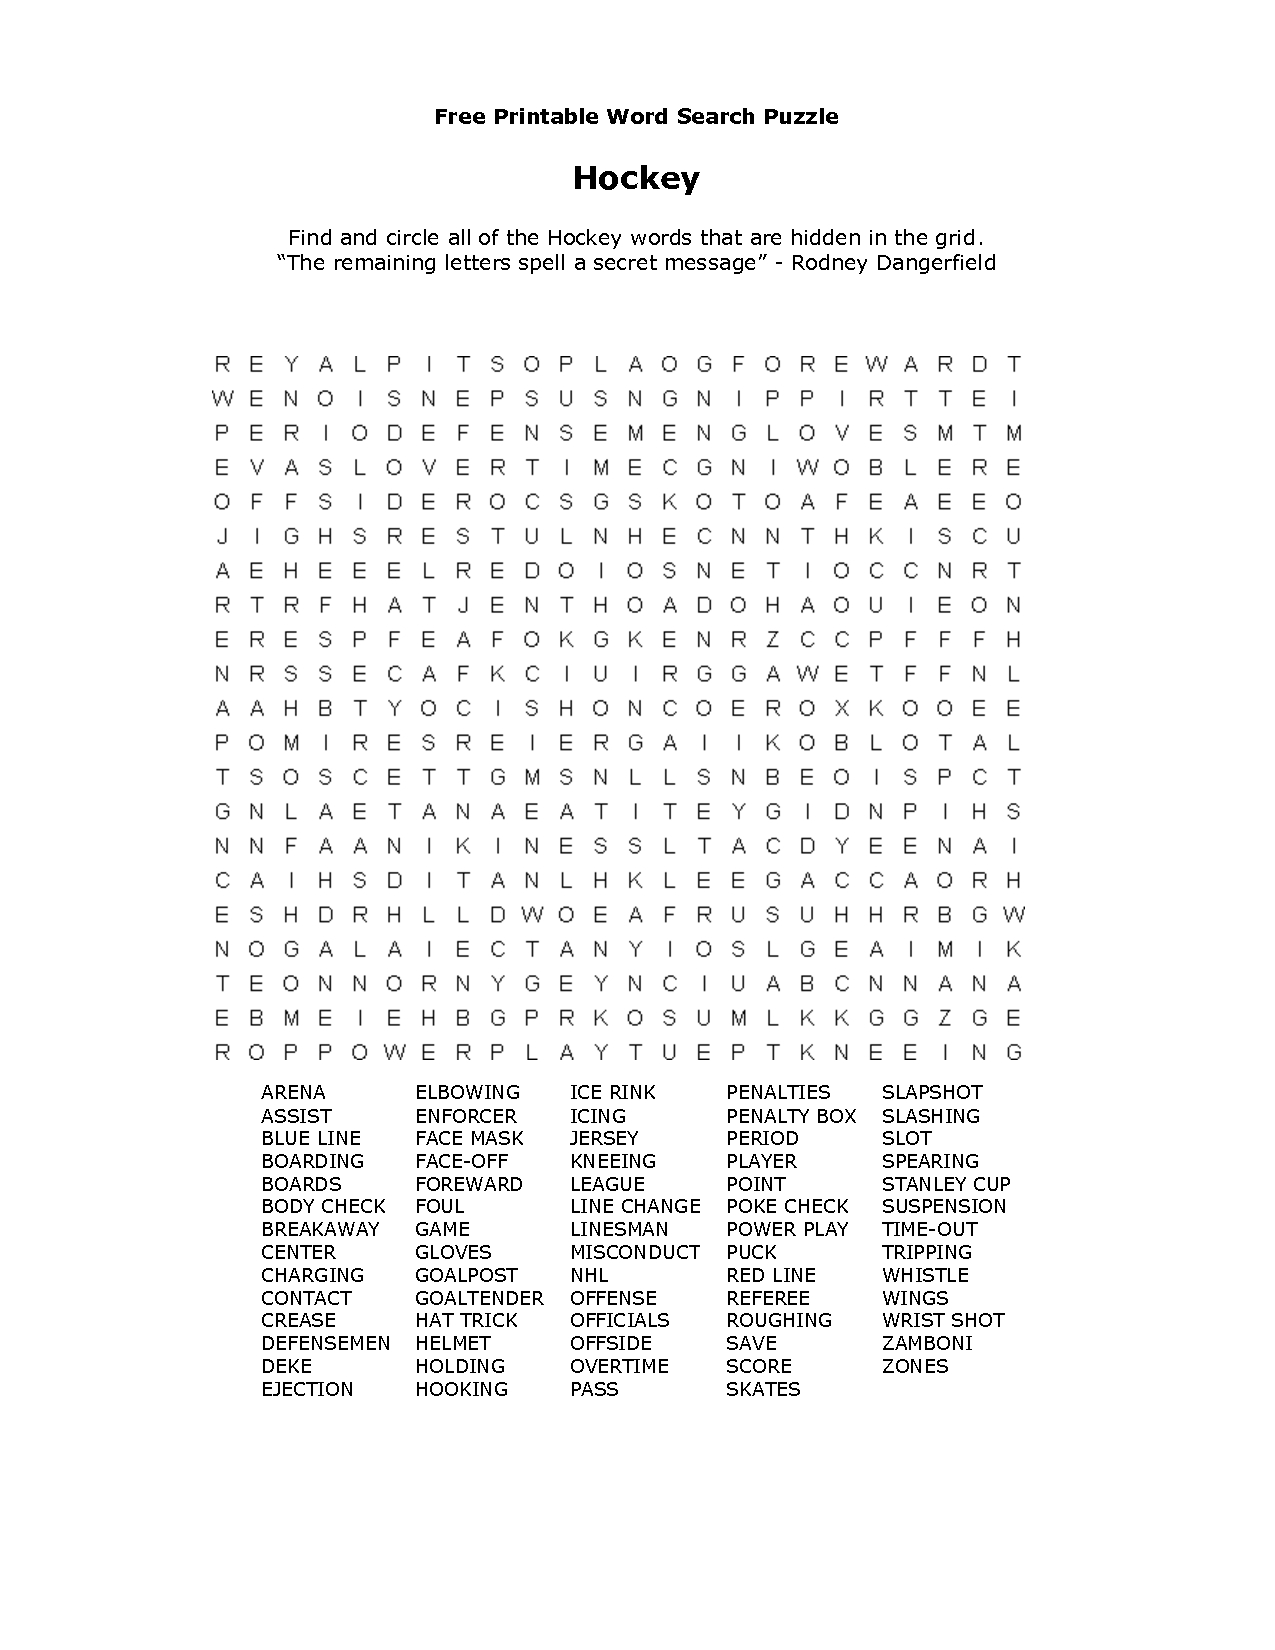 Free Printable Word Searches | Word Search Printables, Free